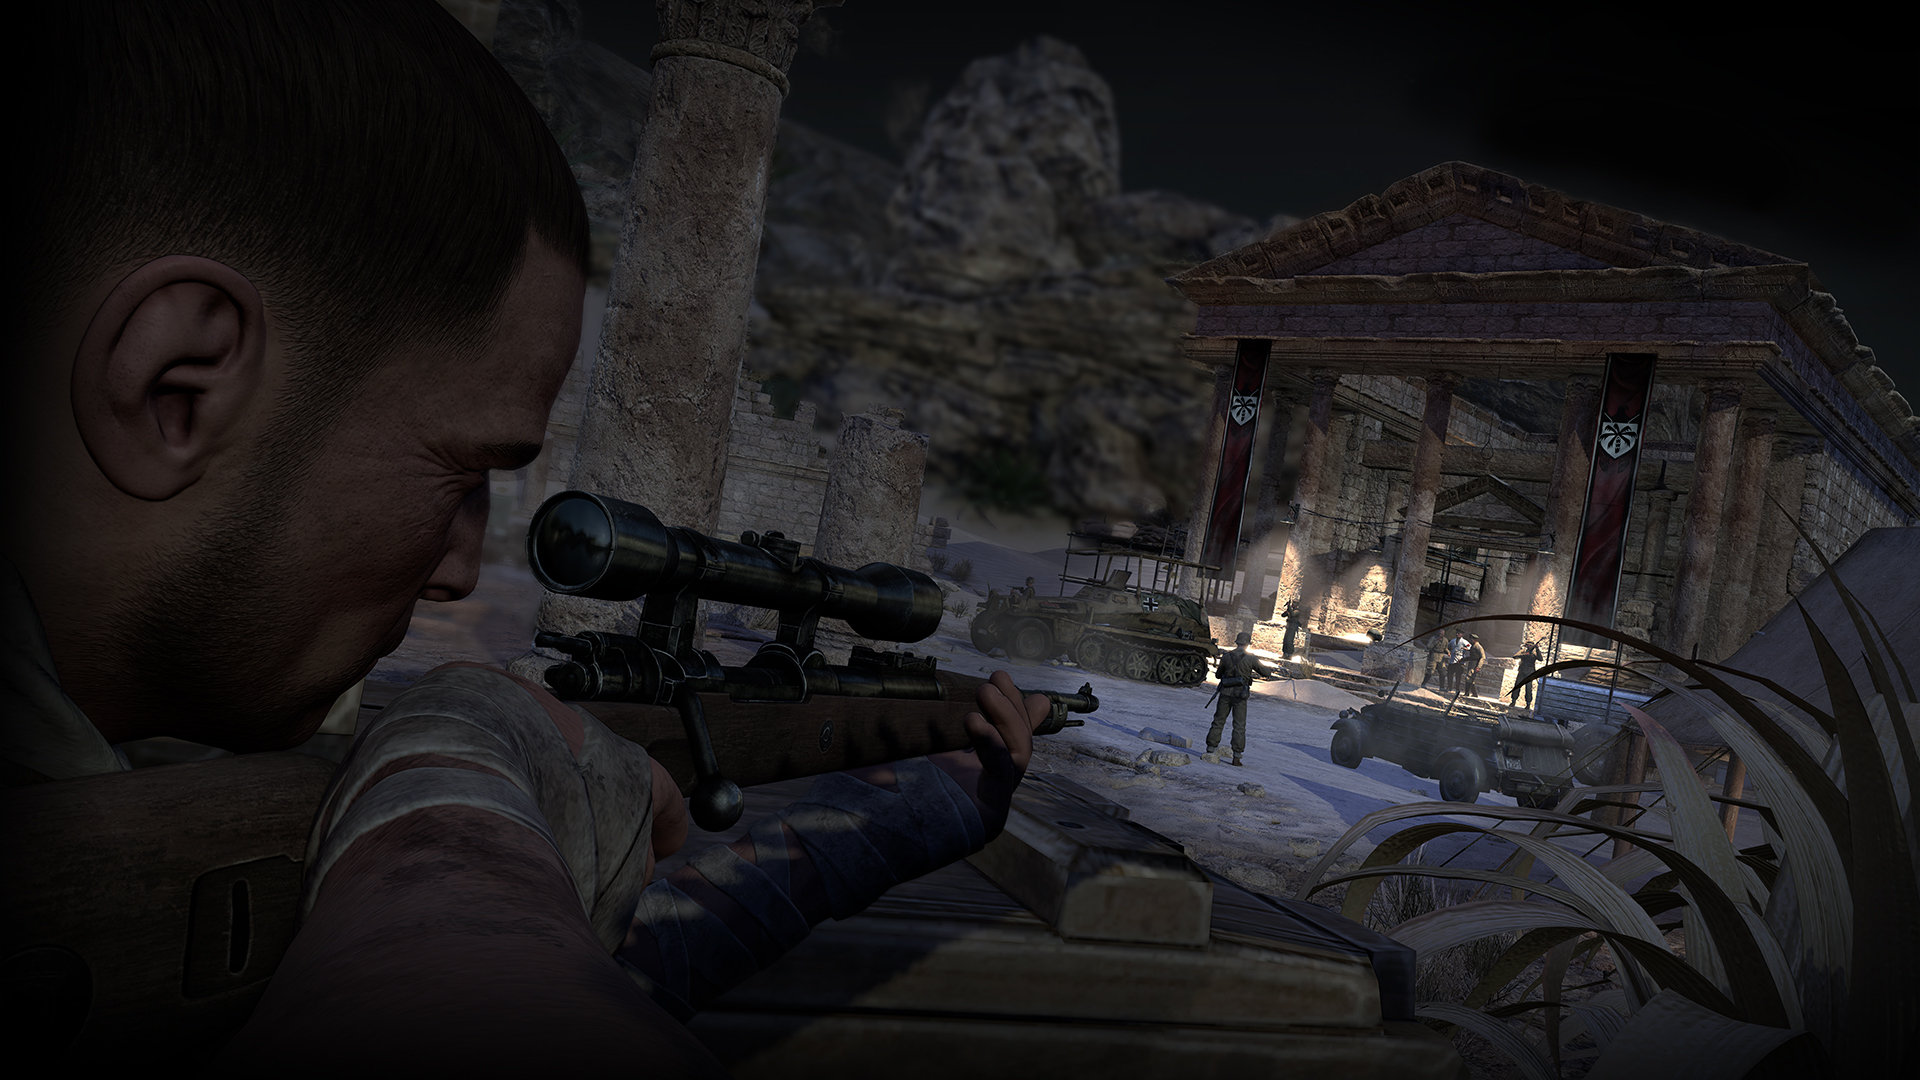 sniper-elite-3-screenshot-04-ps4-us-12ju